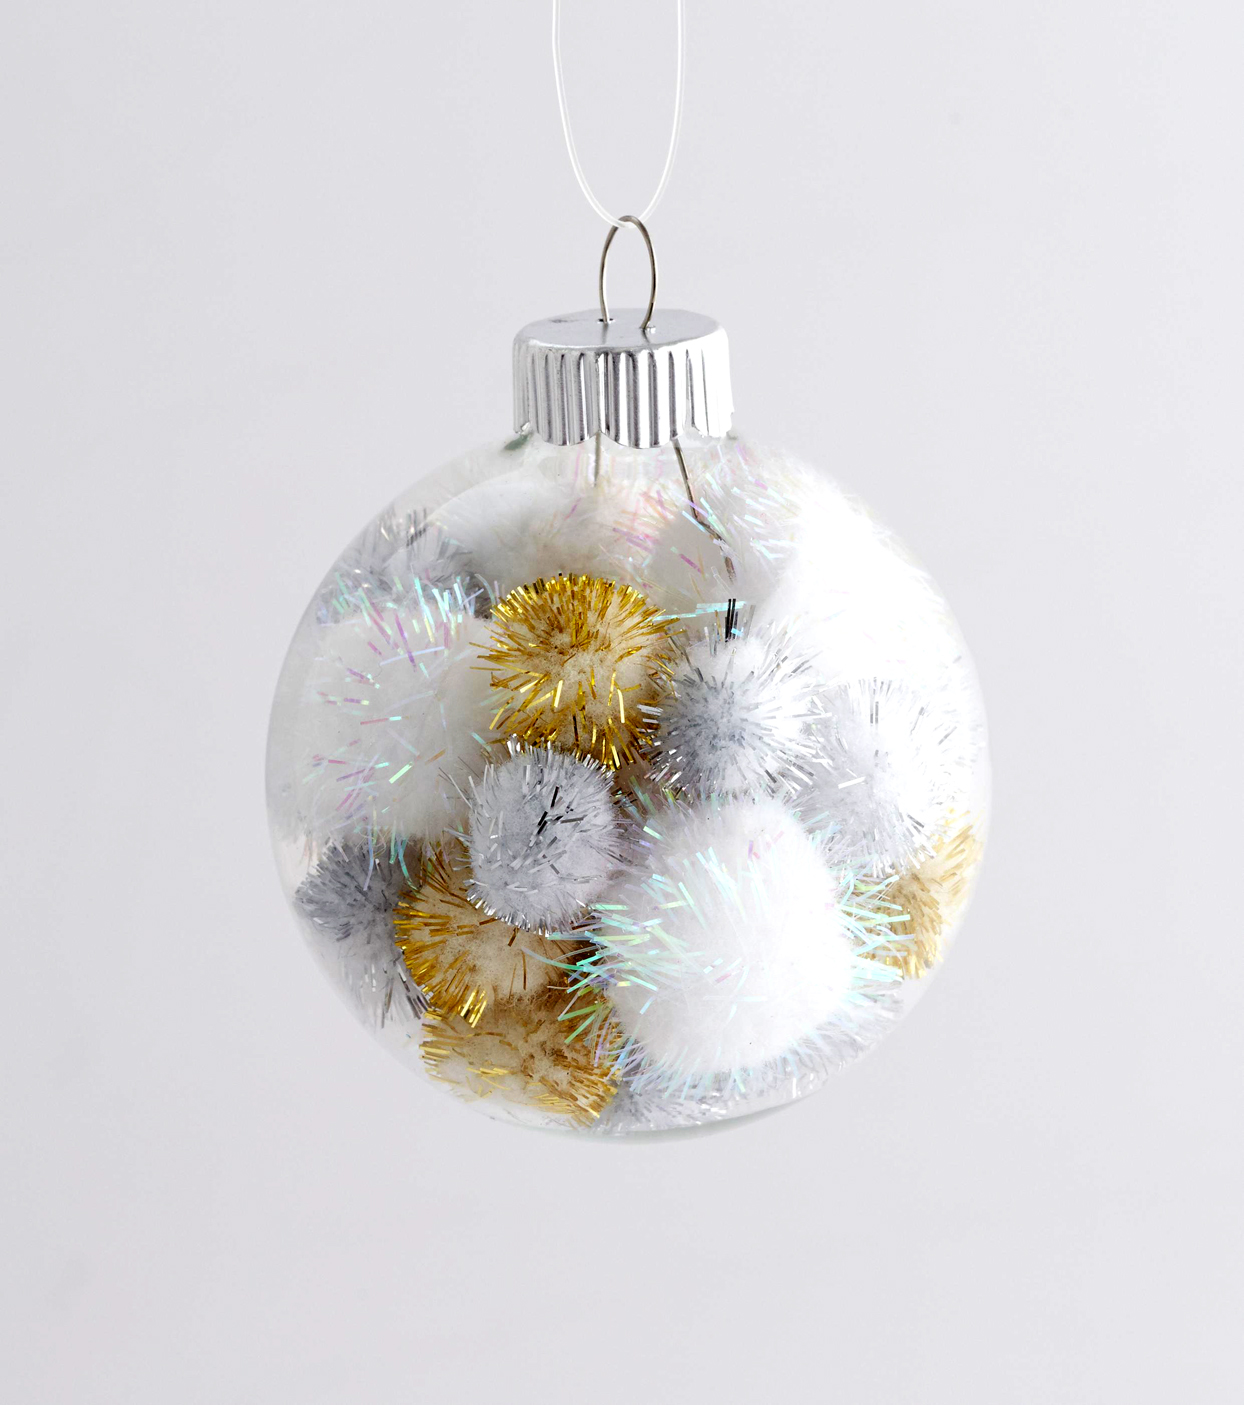 Set of 6 Shimmer snowflakes Christmas ornaments Gold tree decoration silver hanging ornaments window embellishment